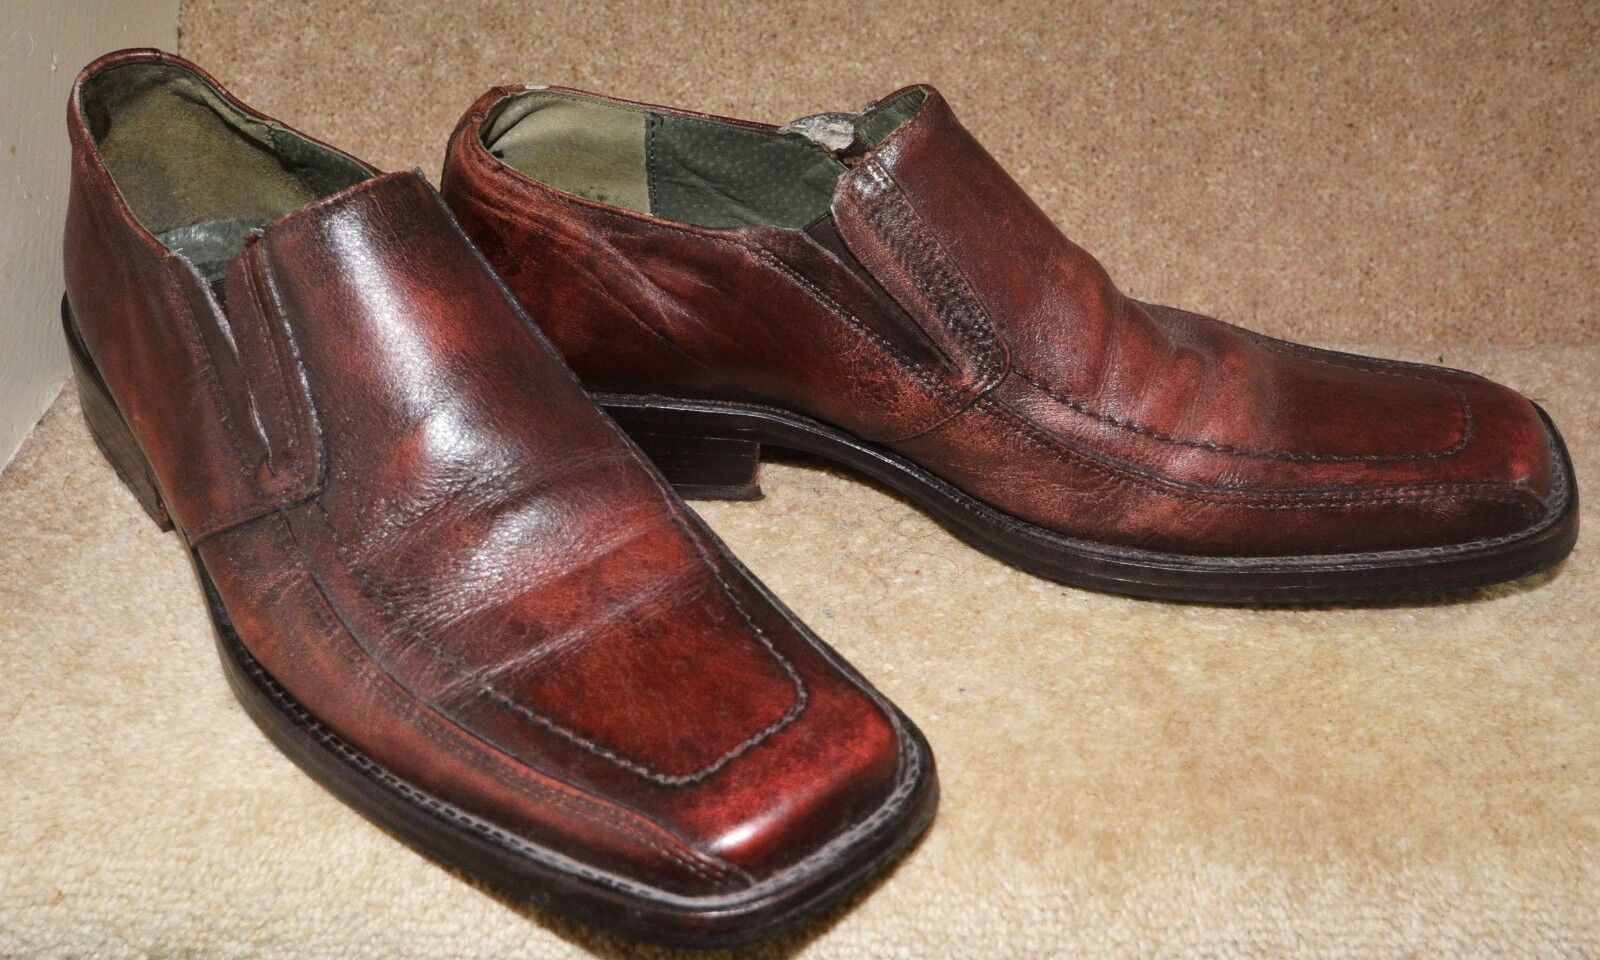 Men's Frank Wright Shoes Brown Size Tan Leather Slip On Size Brown 9 Classic Square Toe 79f48c